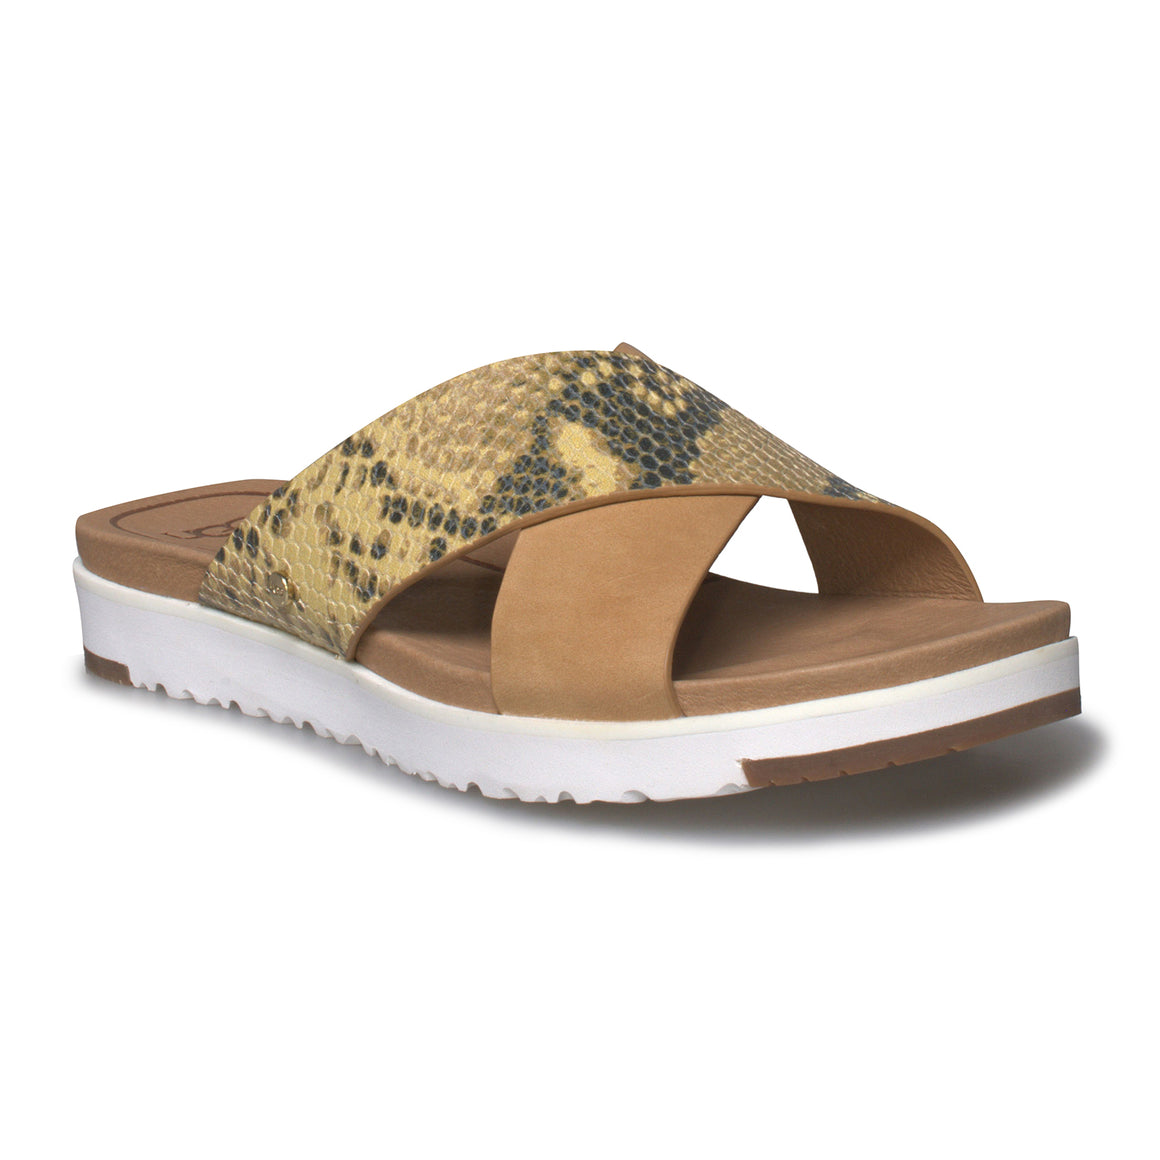 UGG Kari Exotic Tan Sandals - Women's